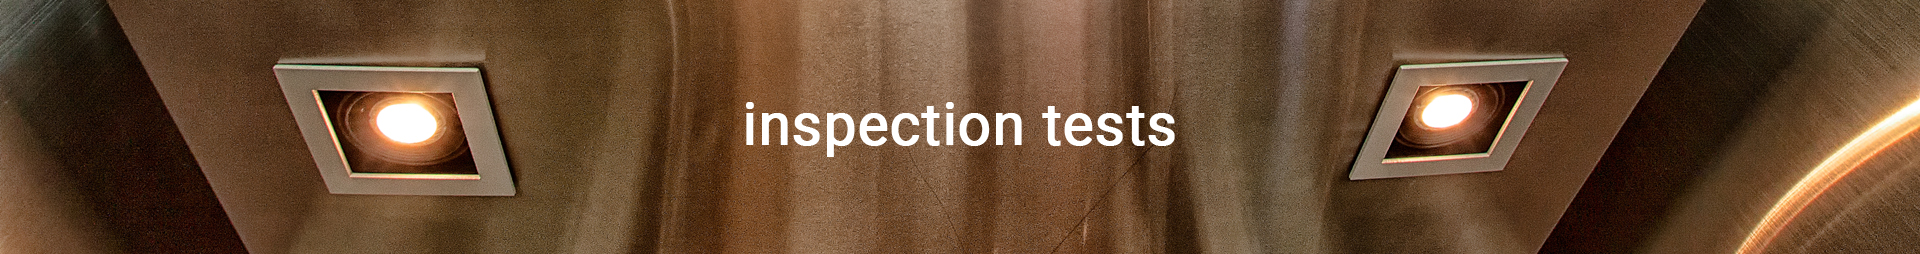 inspection-tests